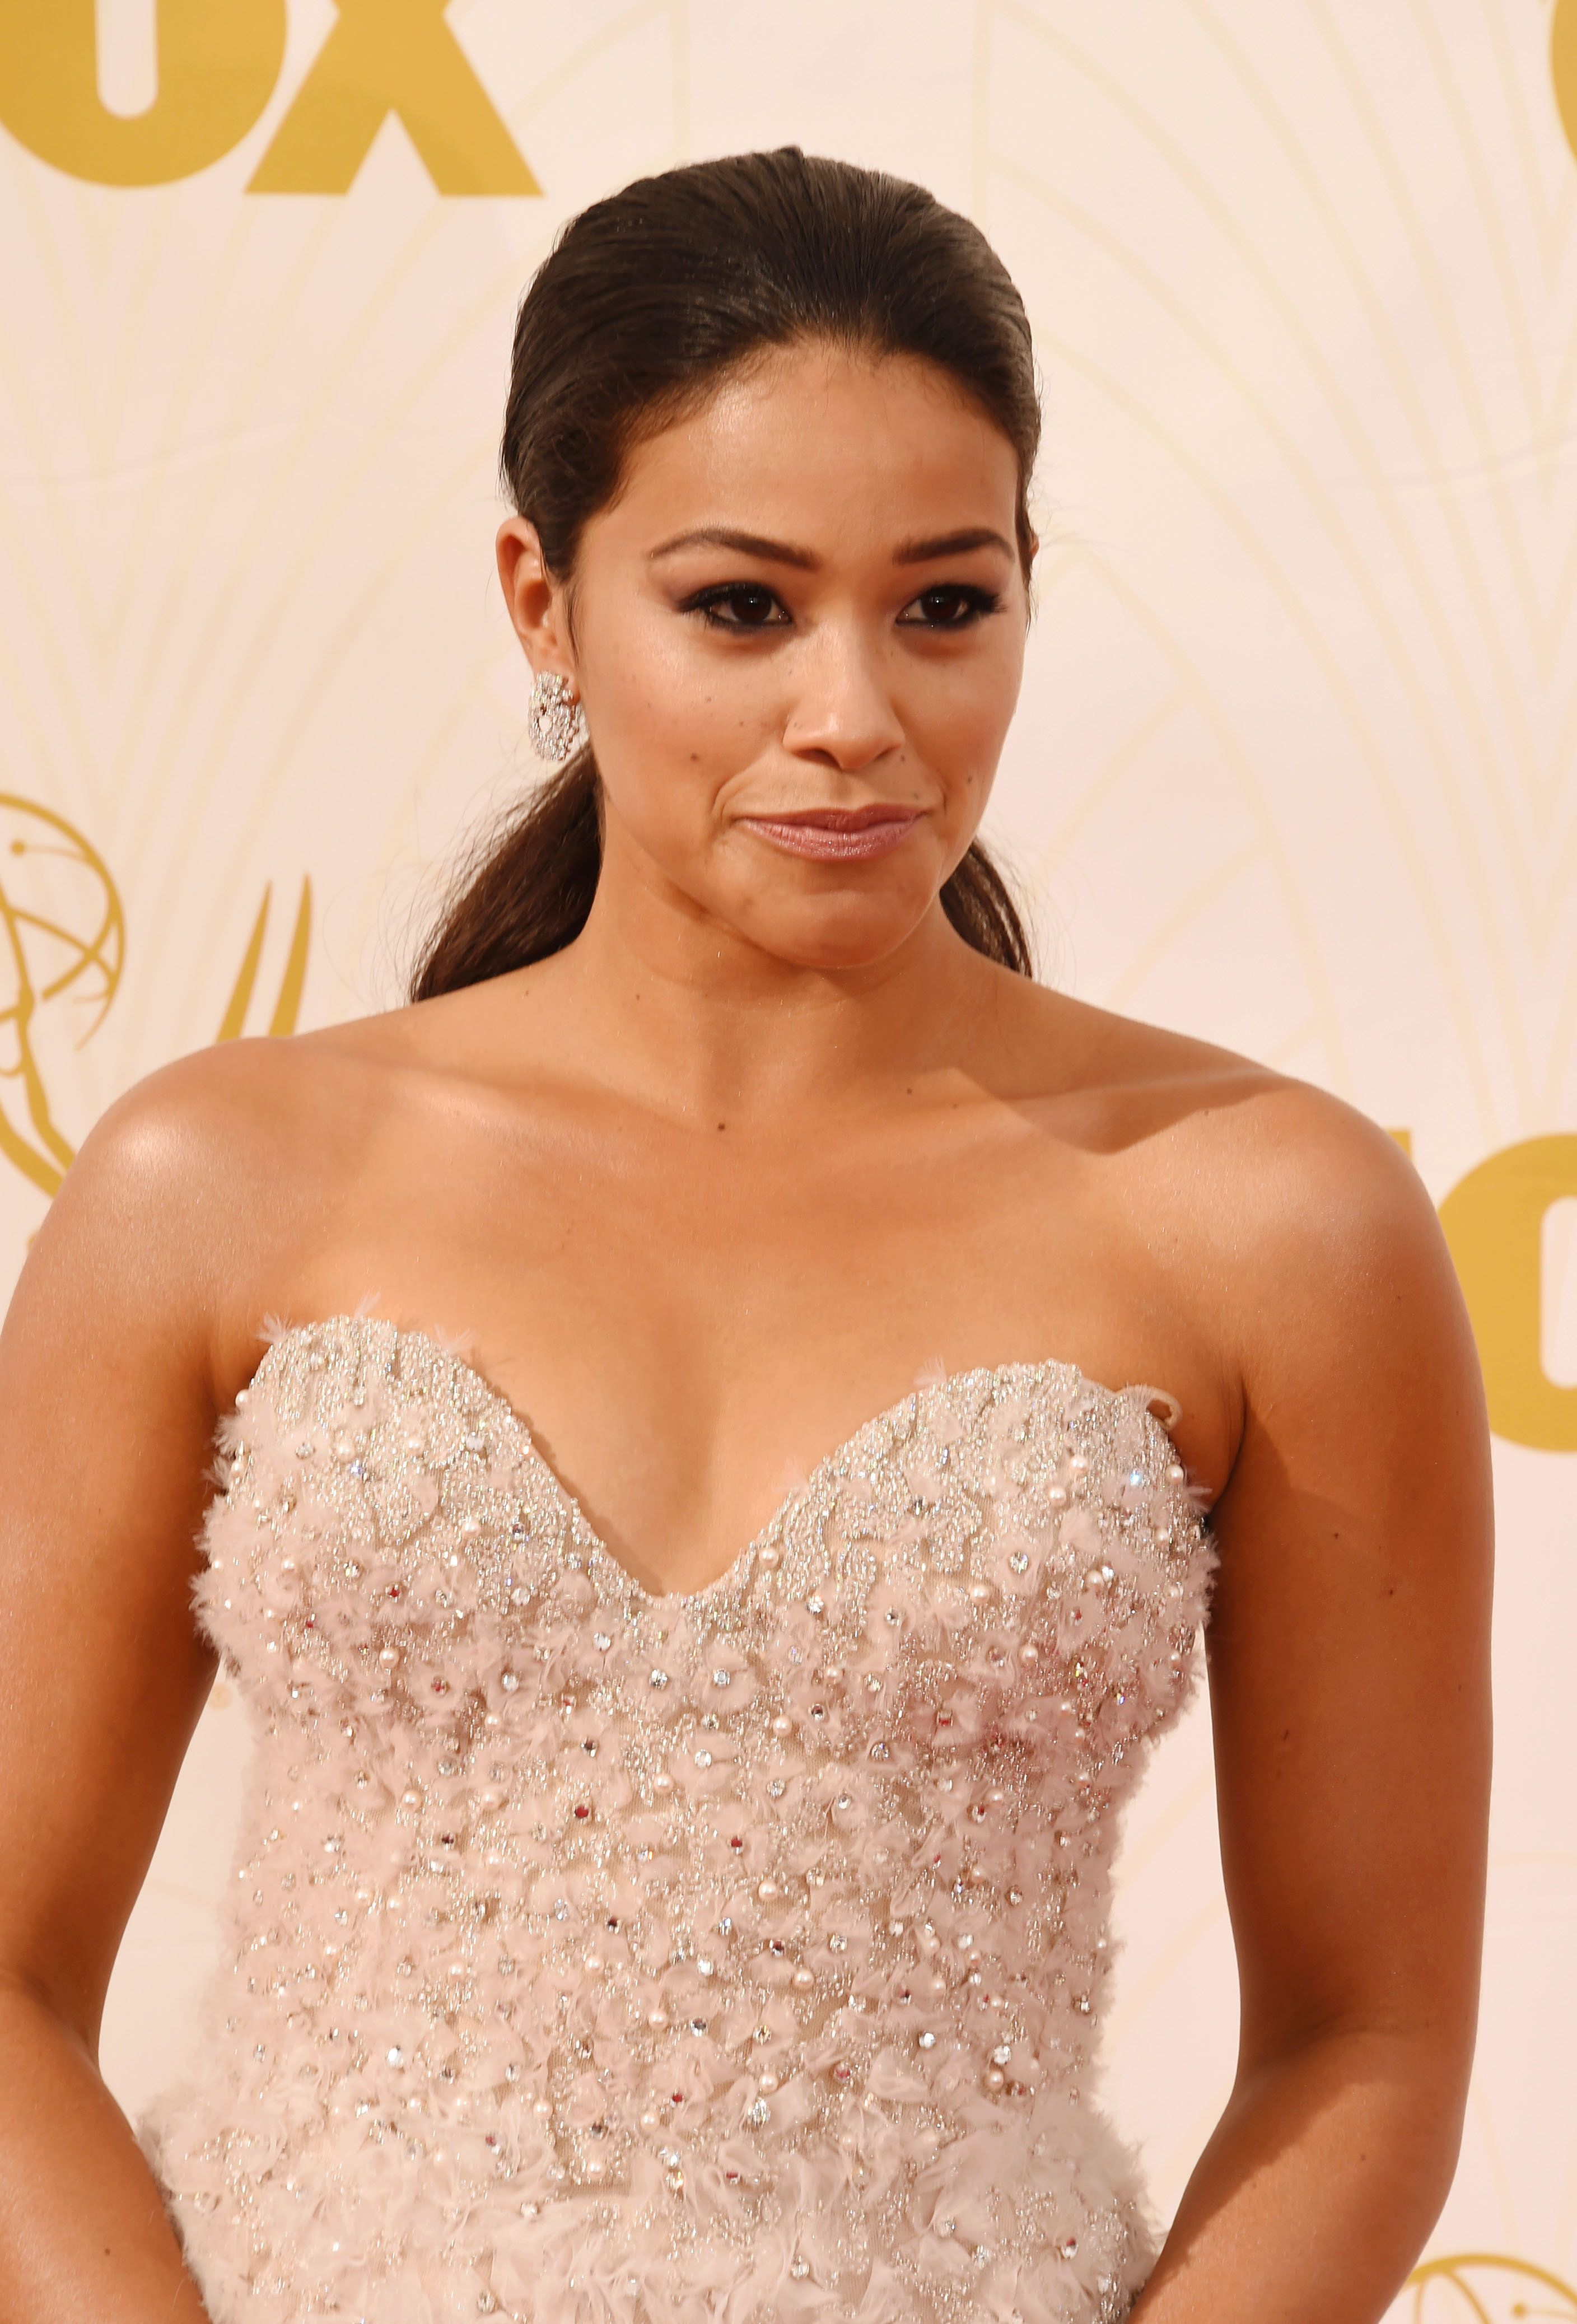 LOS ANGELES, CA - SEPTEMBER 20: Actress Gina Rodriguez attends the 67th Annual Primetime Emmy Awards at Microsoft Theater on September 20, 2015 in Los Angeles, California.(Photo by Jeffrey Mayer/WireImage)